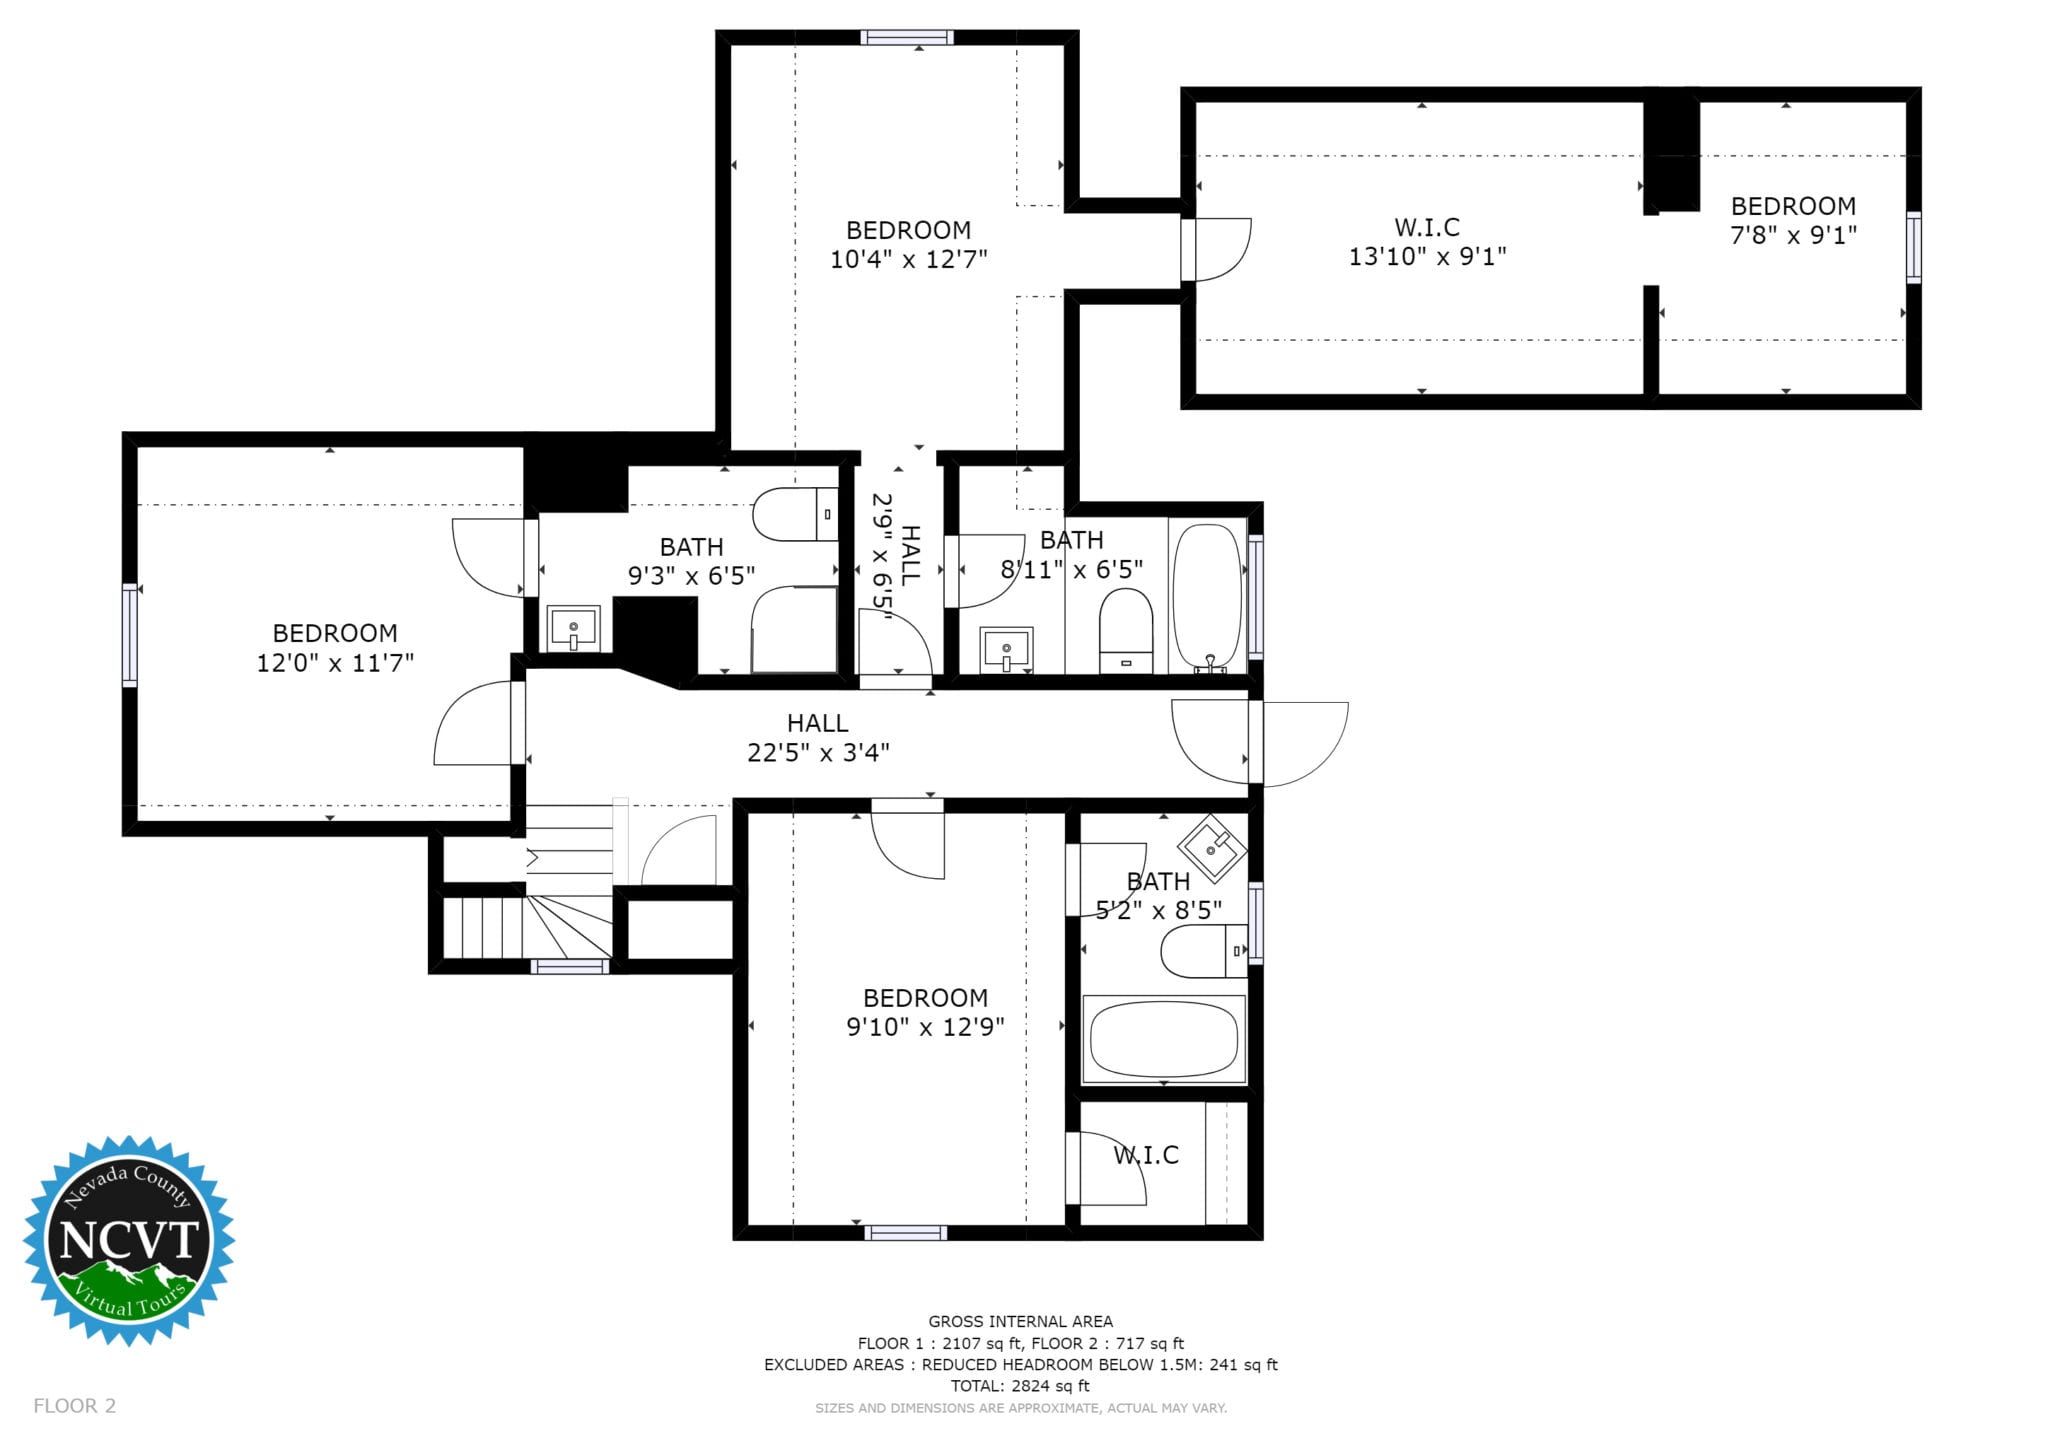 floor plans nevada county virtual tours